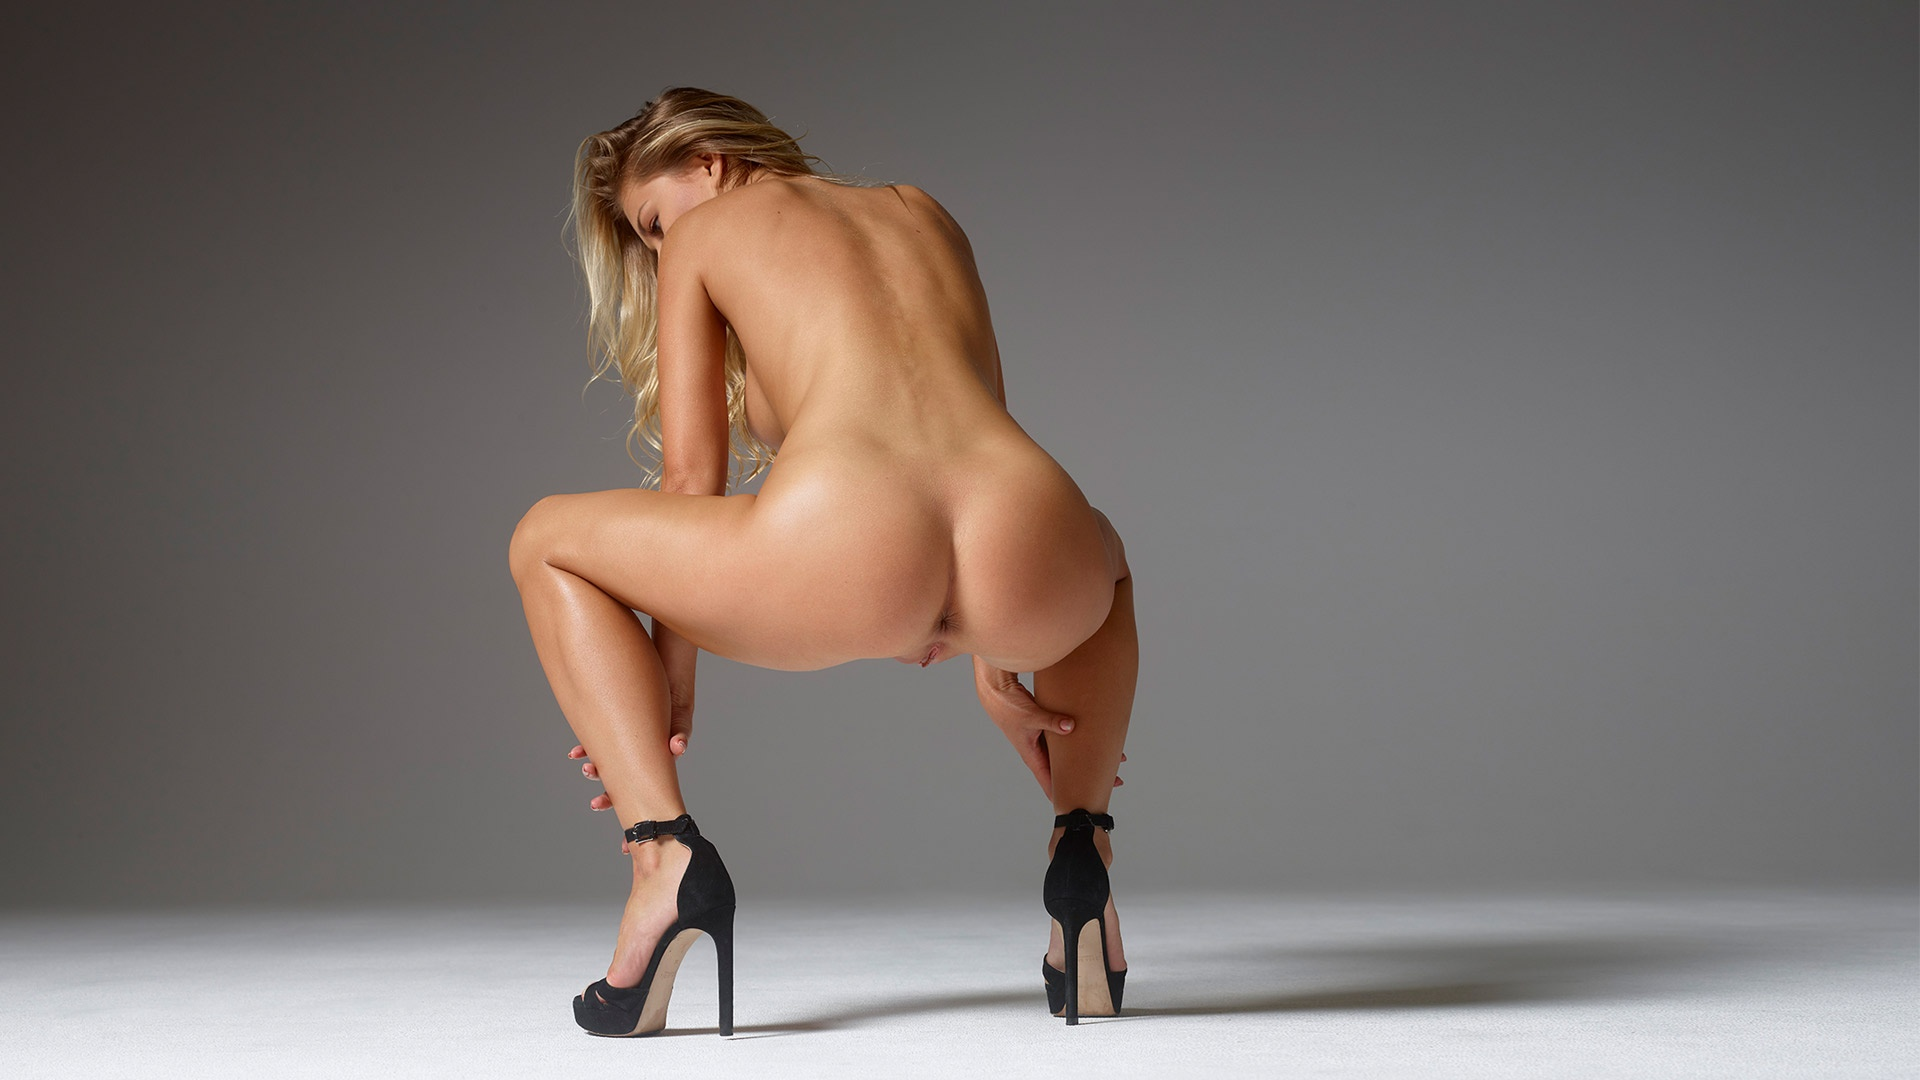 Perfect tight ass nude